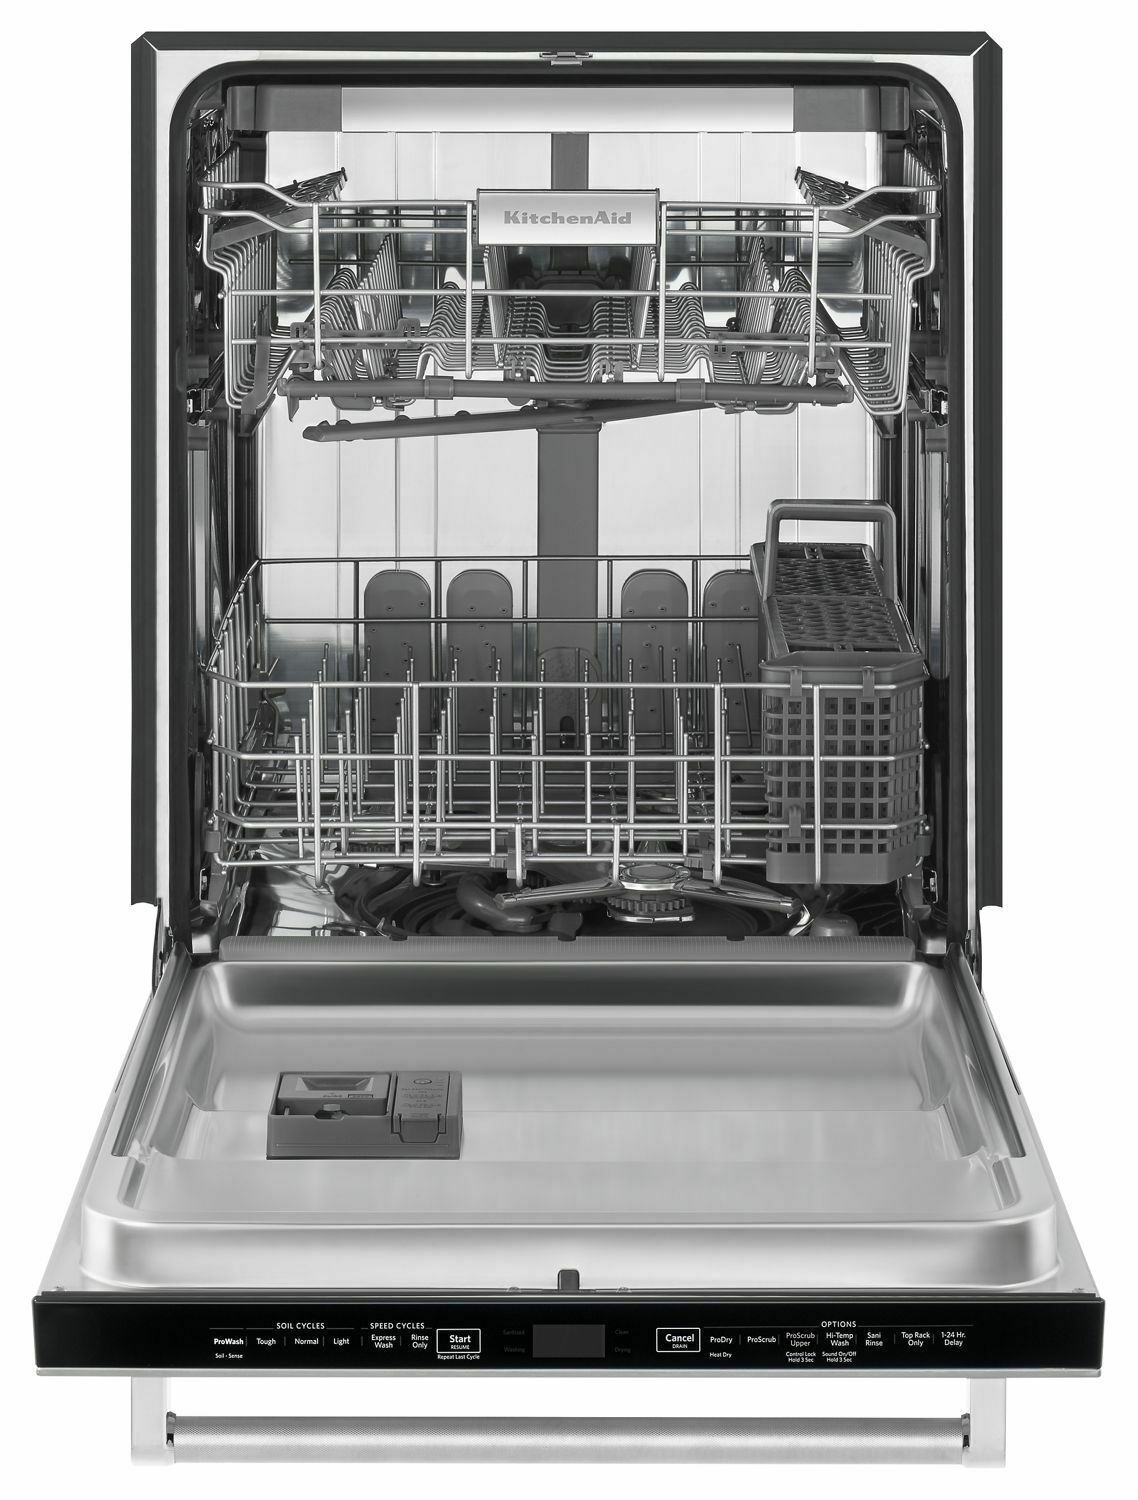 Kdtm404ess Kitchenaid 44 Dba Dishwasher With Dynamic Wash Arms Stainless Steel Stainless Steel Cullen S Home Center,Game Of Thrones Toilet Seat